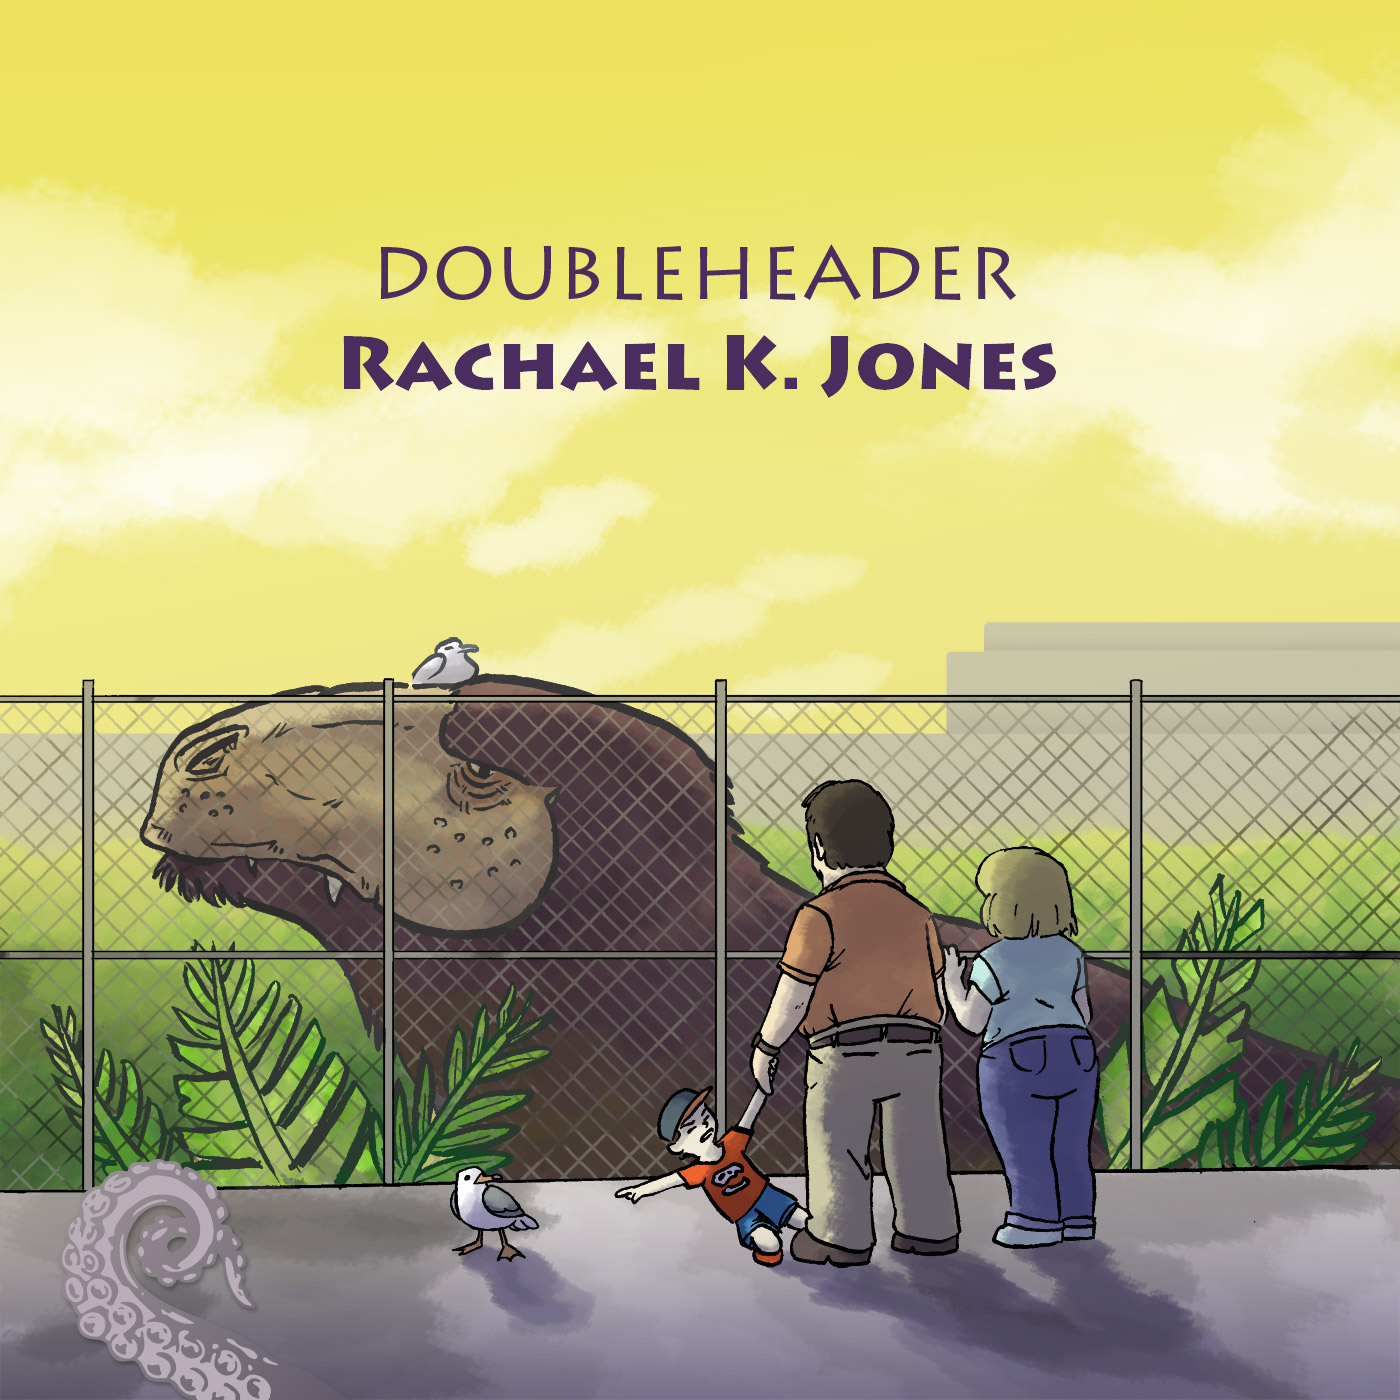 Cover for Drabblecast episode Rachael K Jones Doubleheader by Spencer Bingham